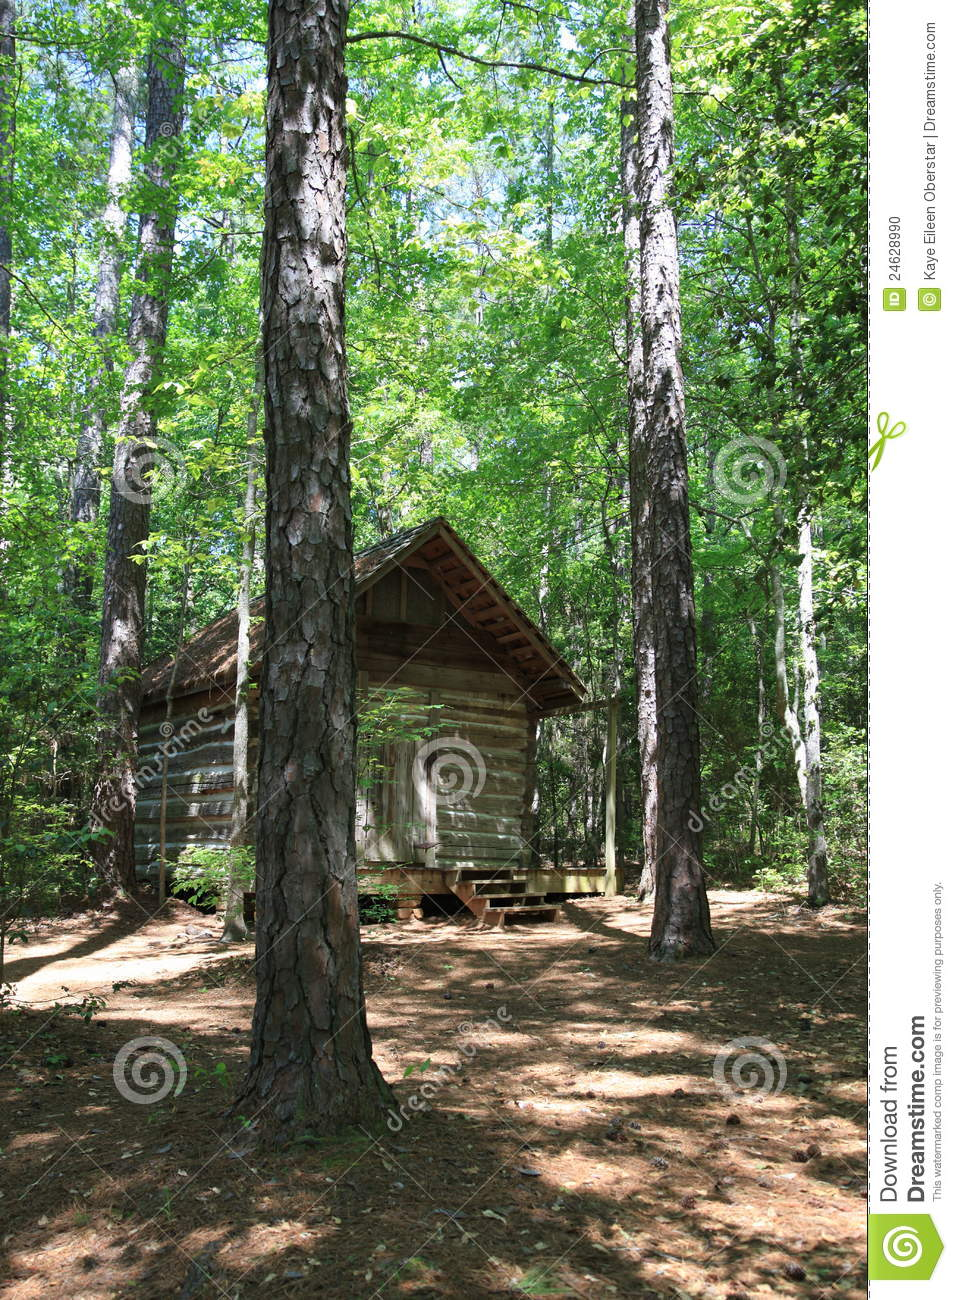 Old steam house at callaway gardens stock photo image 24628990 for Callaway gardens cabin rentals